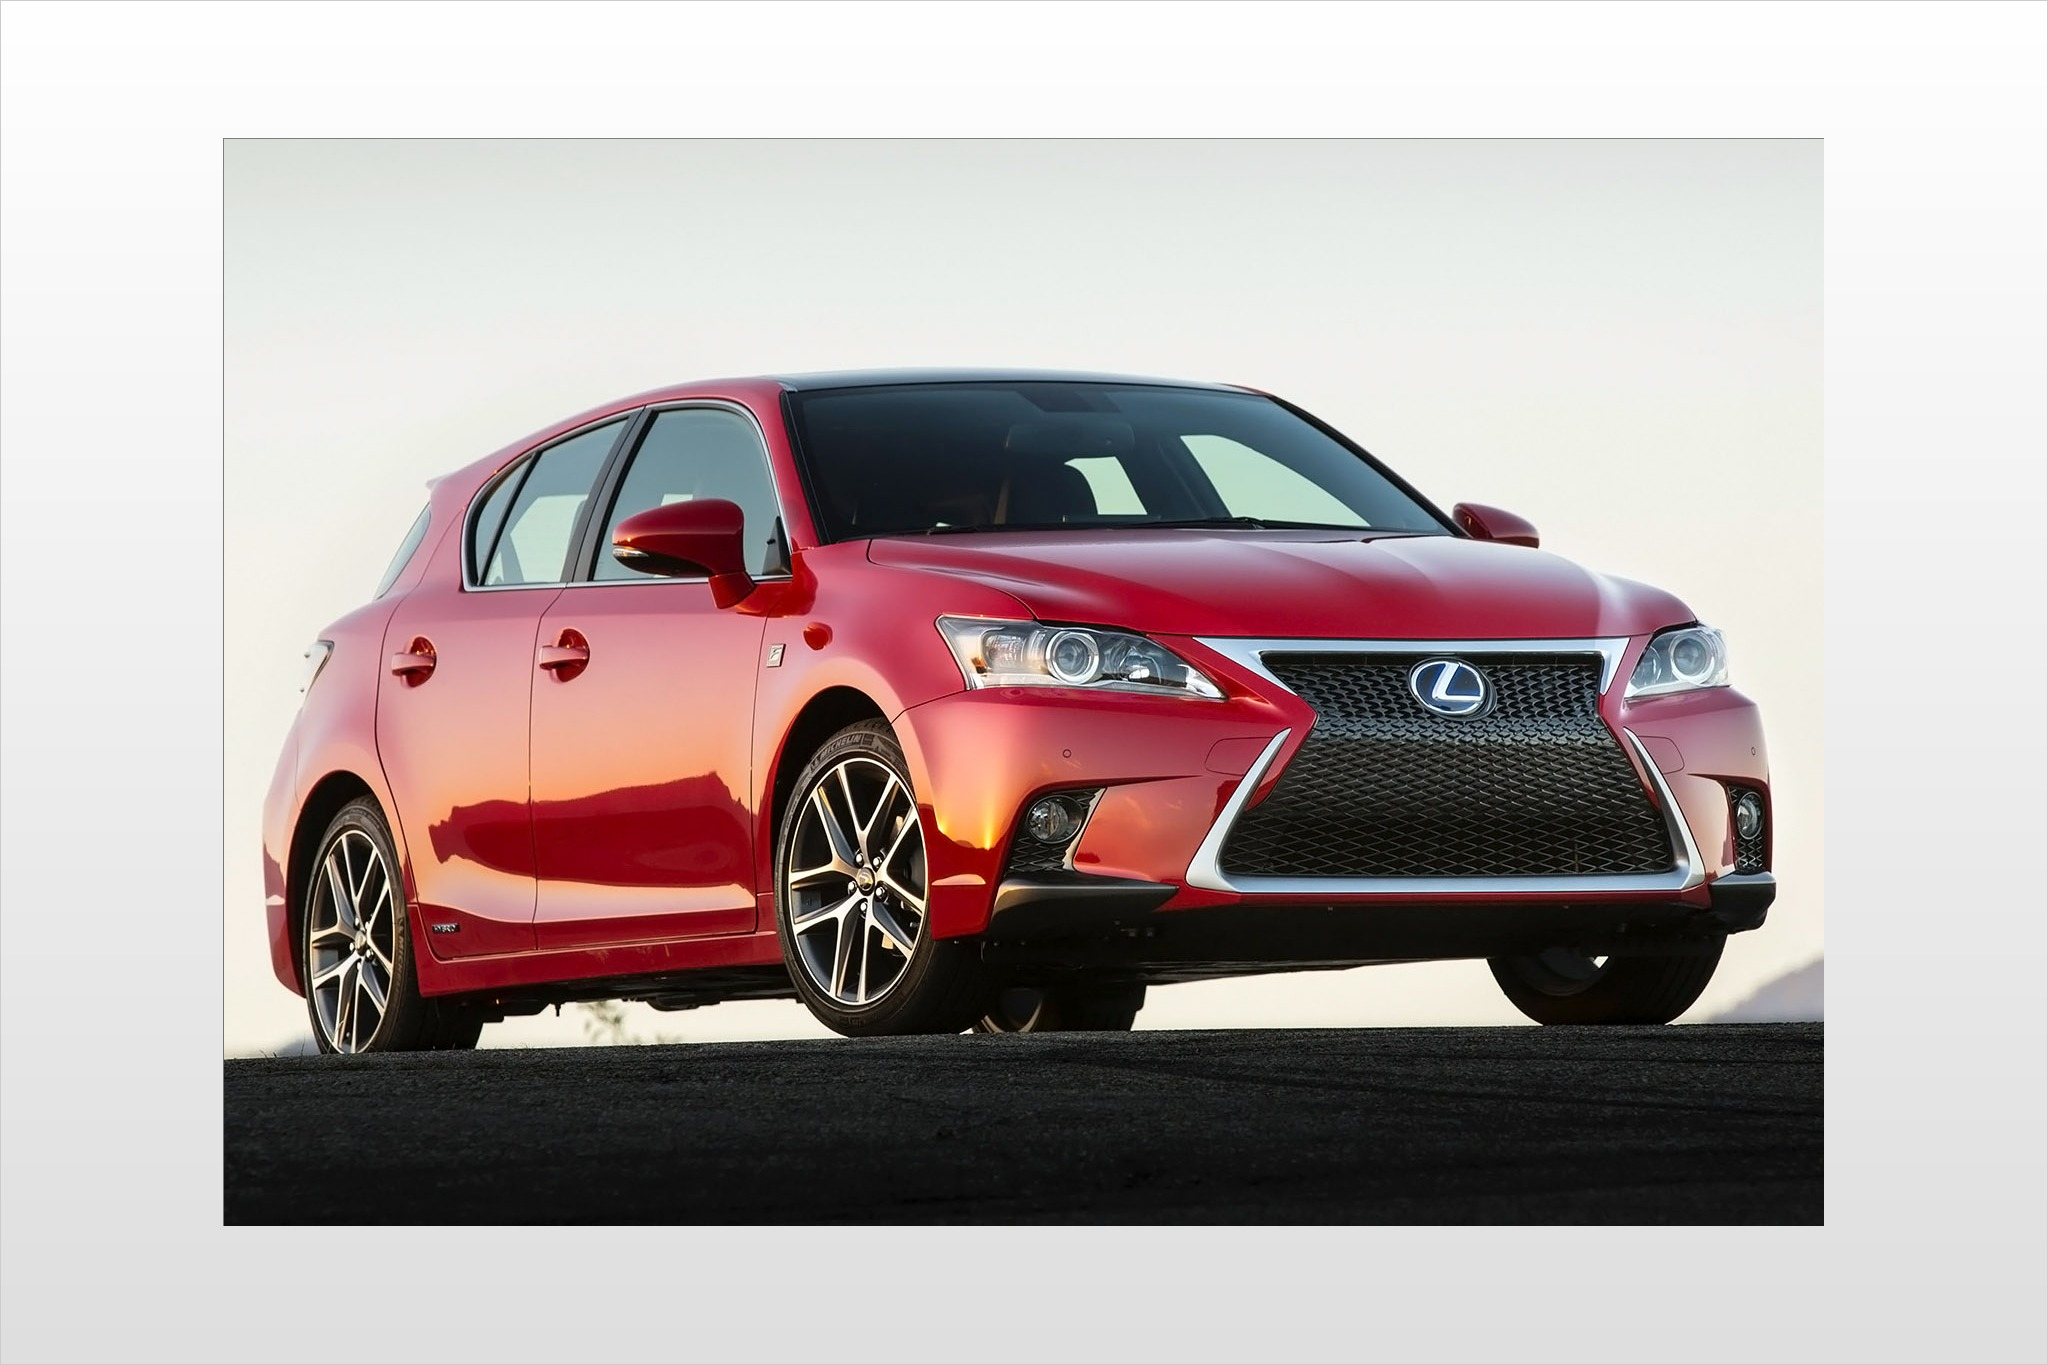 2014 Lexus CT 200h 4dr Ha interior #3